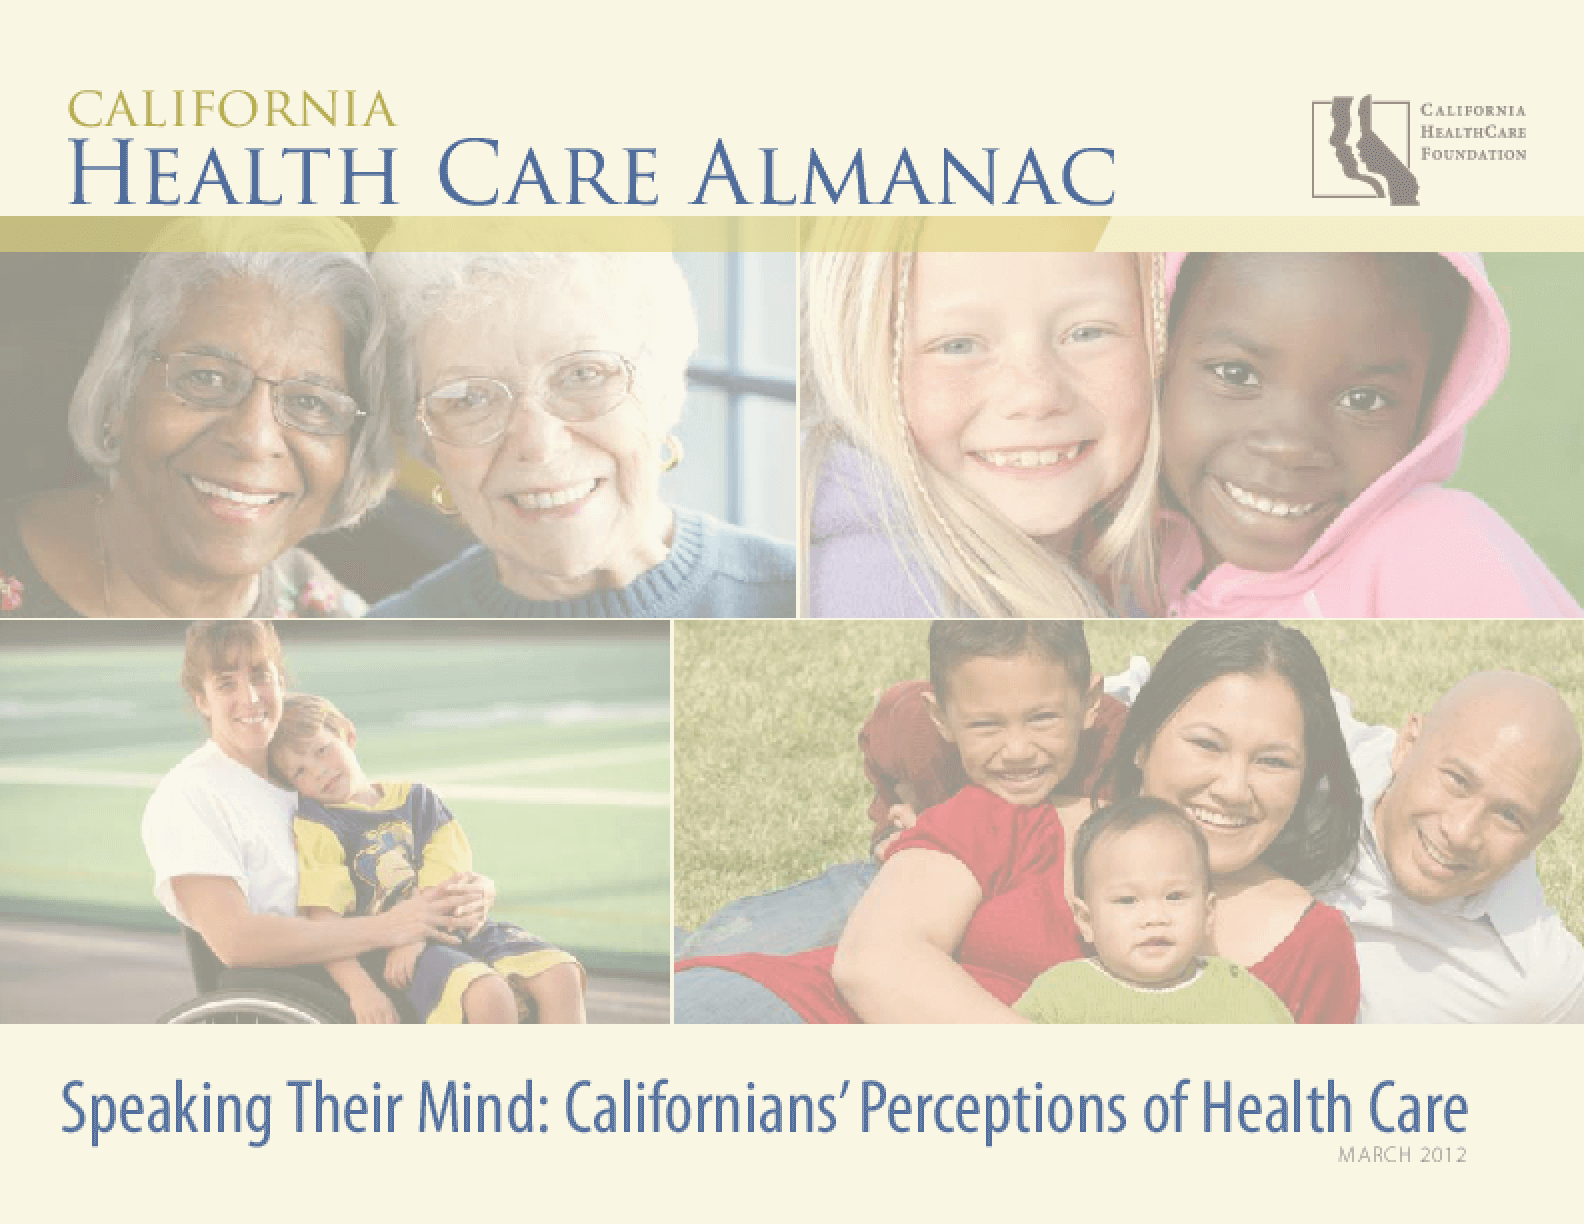 Speaking Their Mind: Californians' Perceptions of Health Care